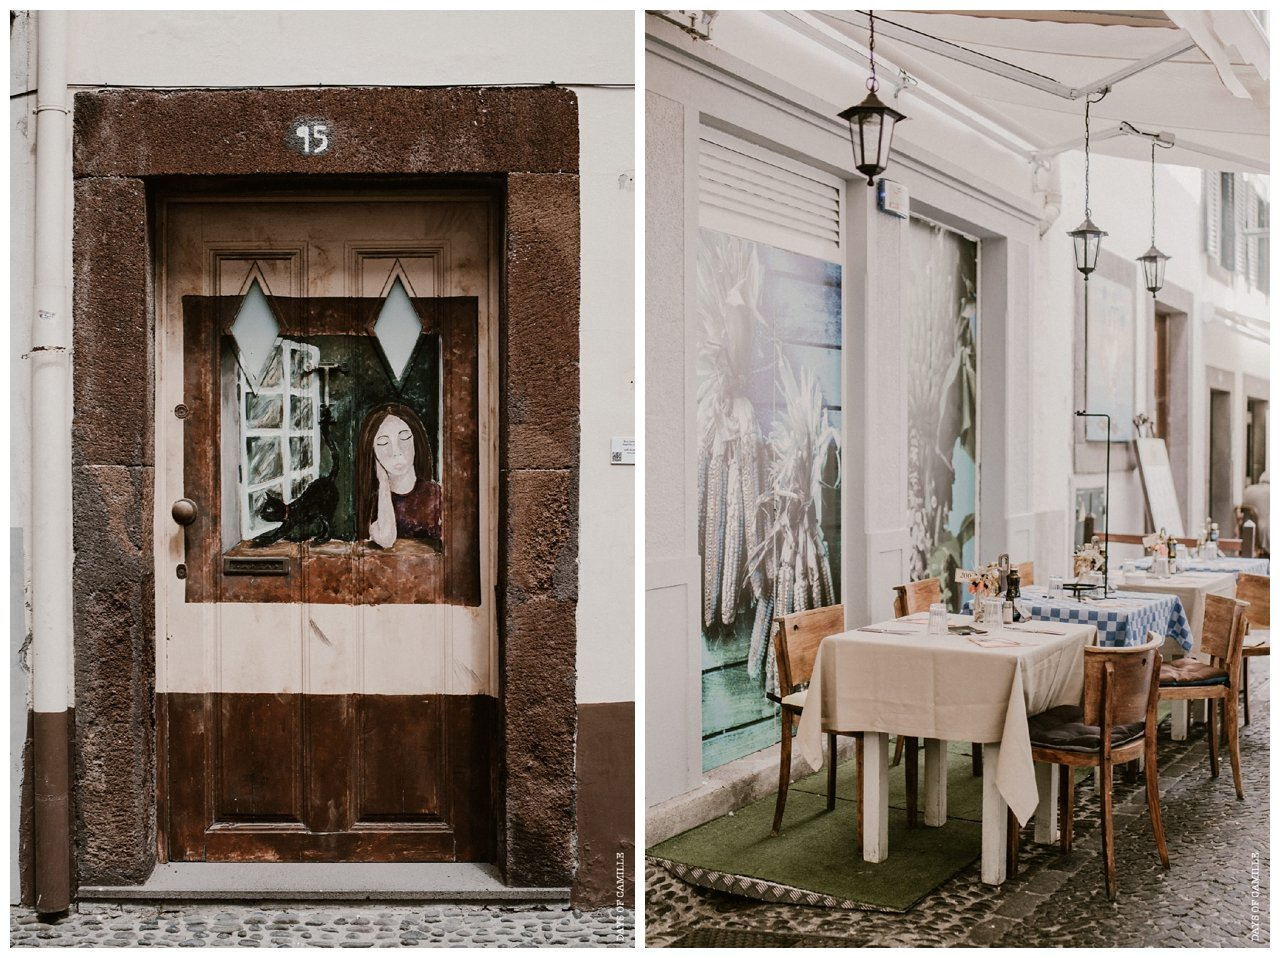 daysofcamille-voyage-madere-funchal17